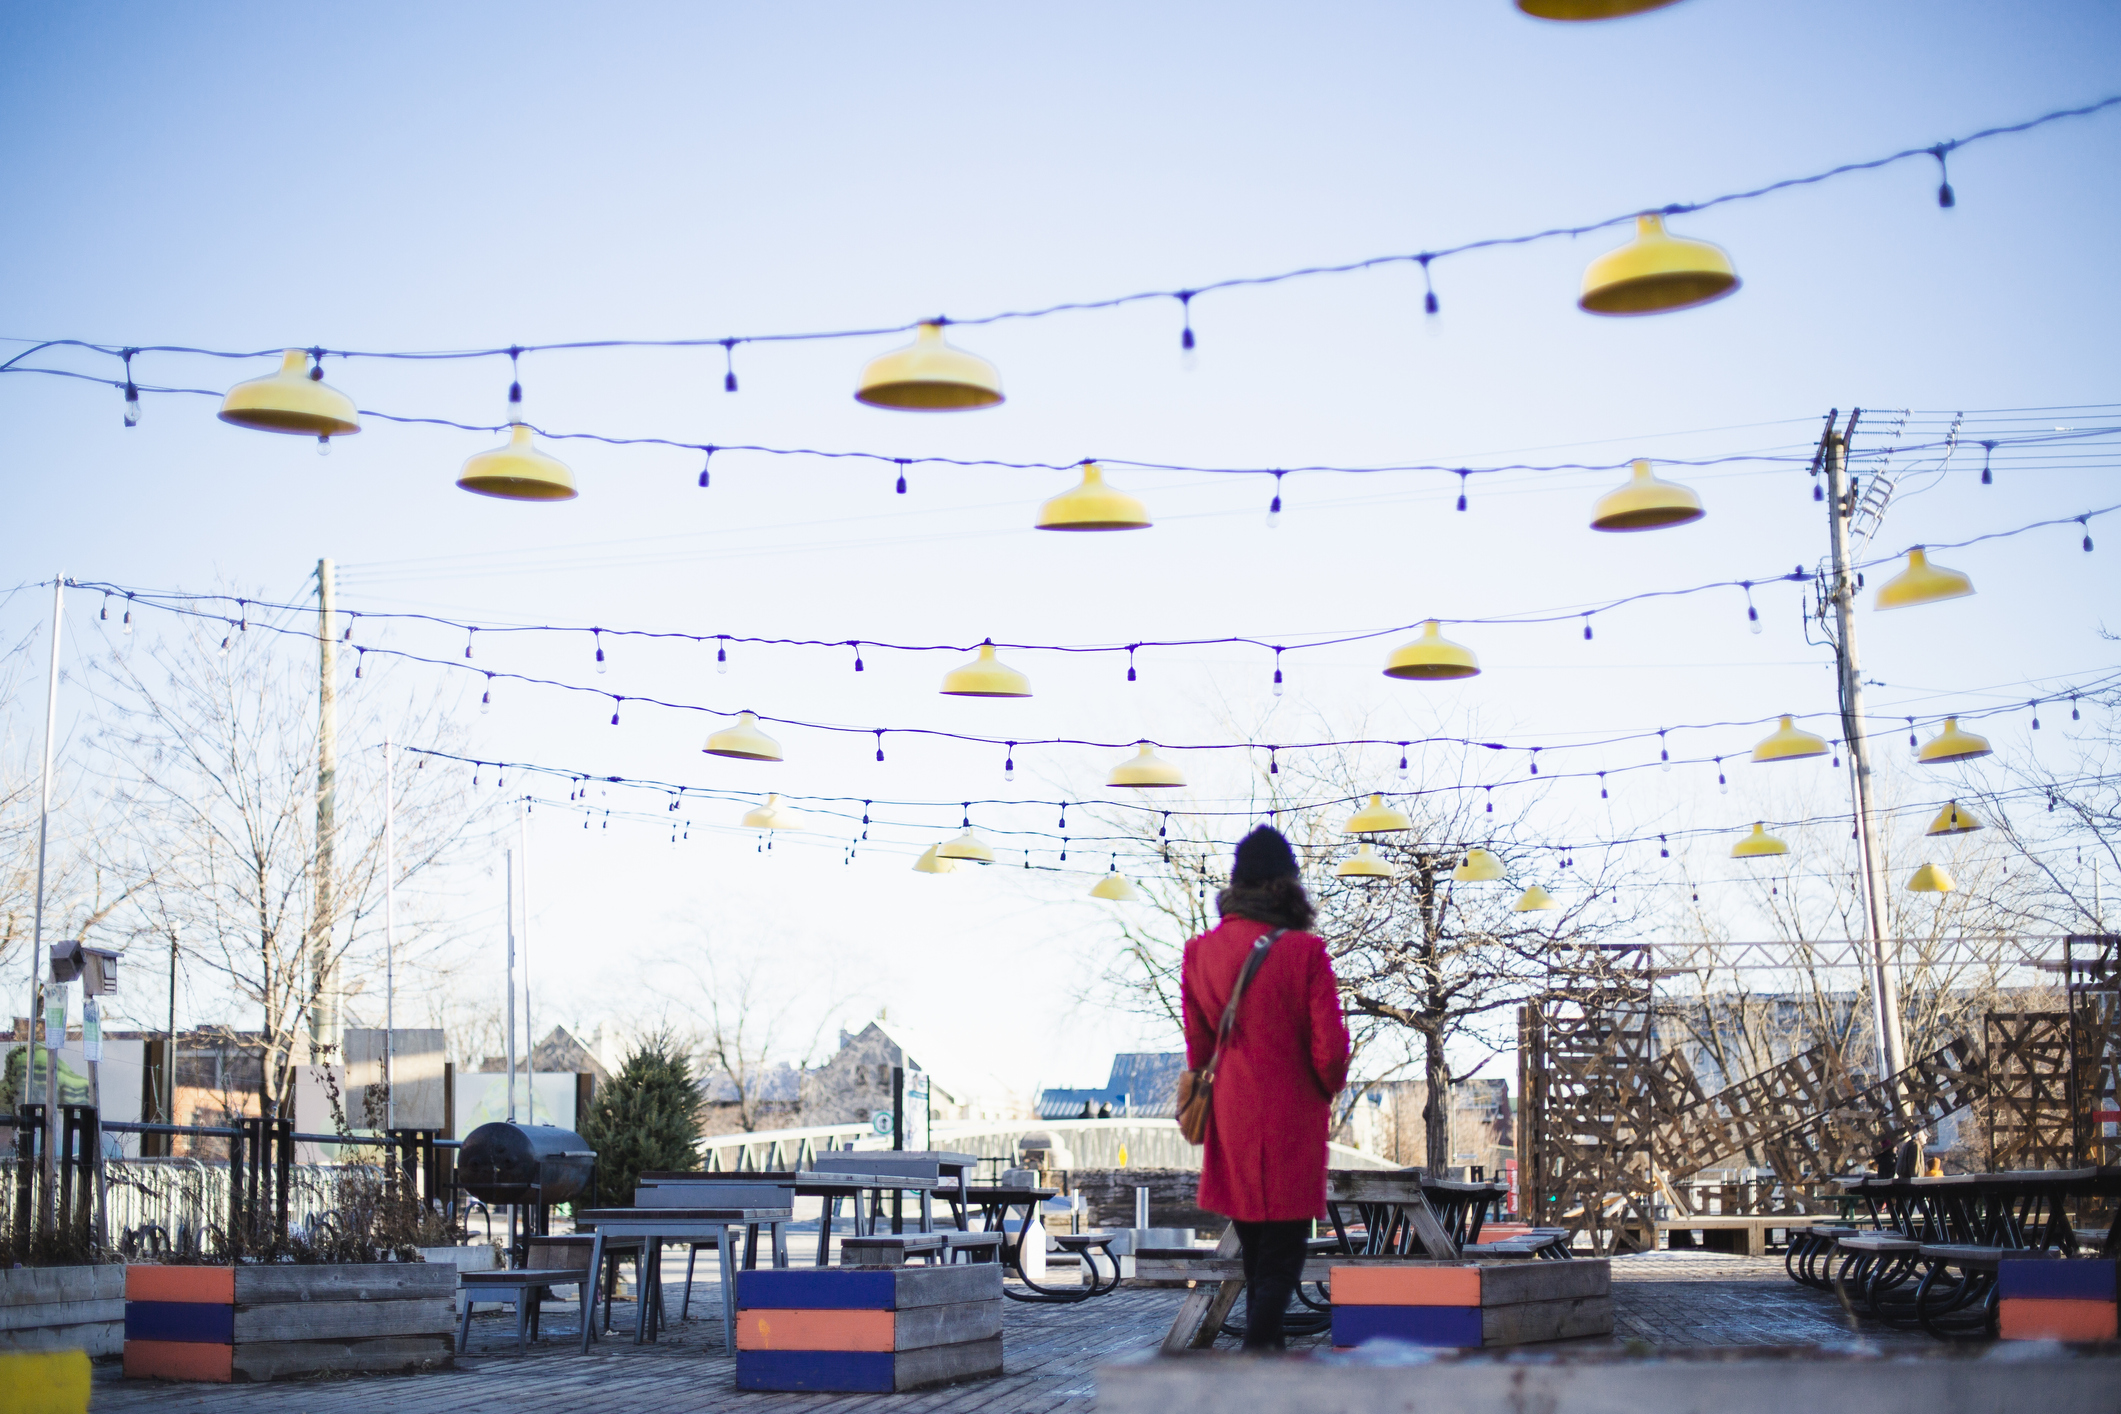 A person in a red coat stands in front of empty picnic tables and string lights